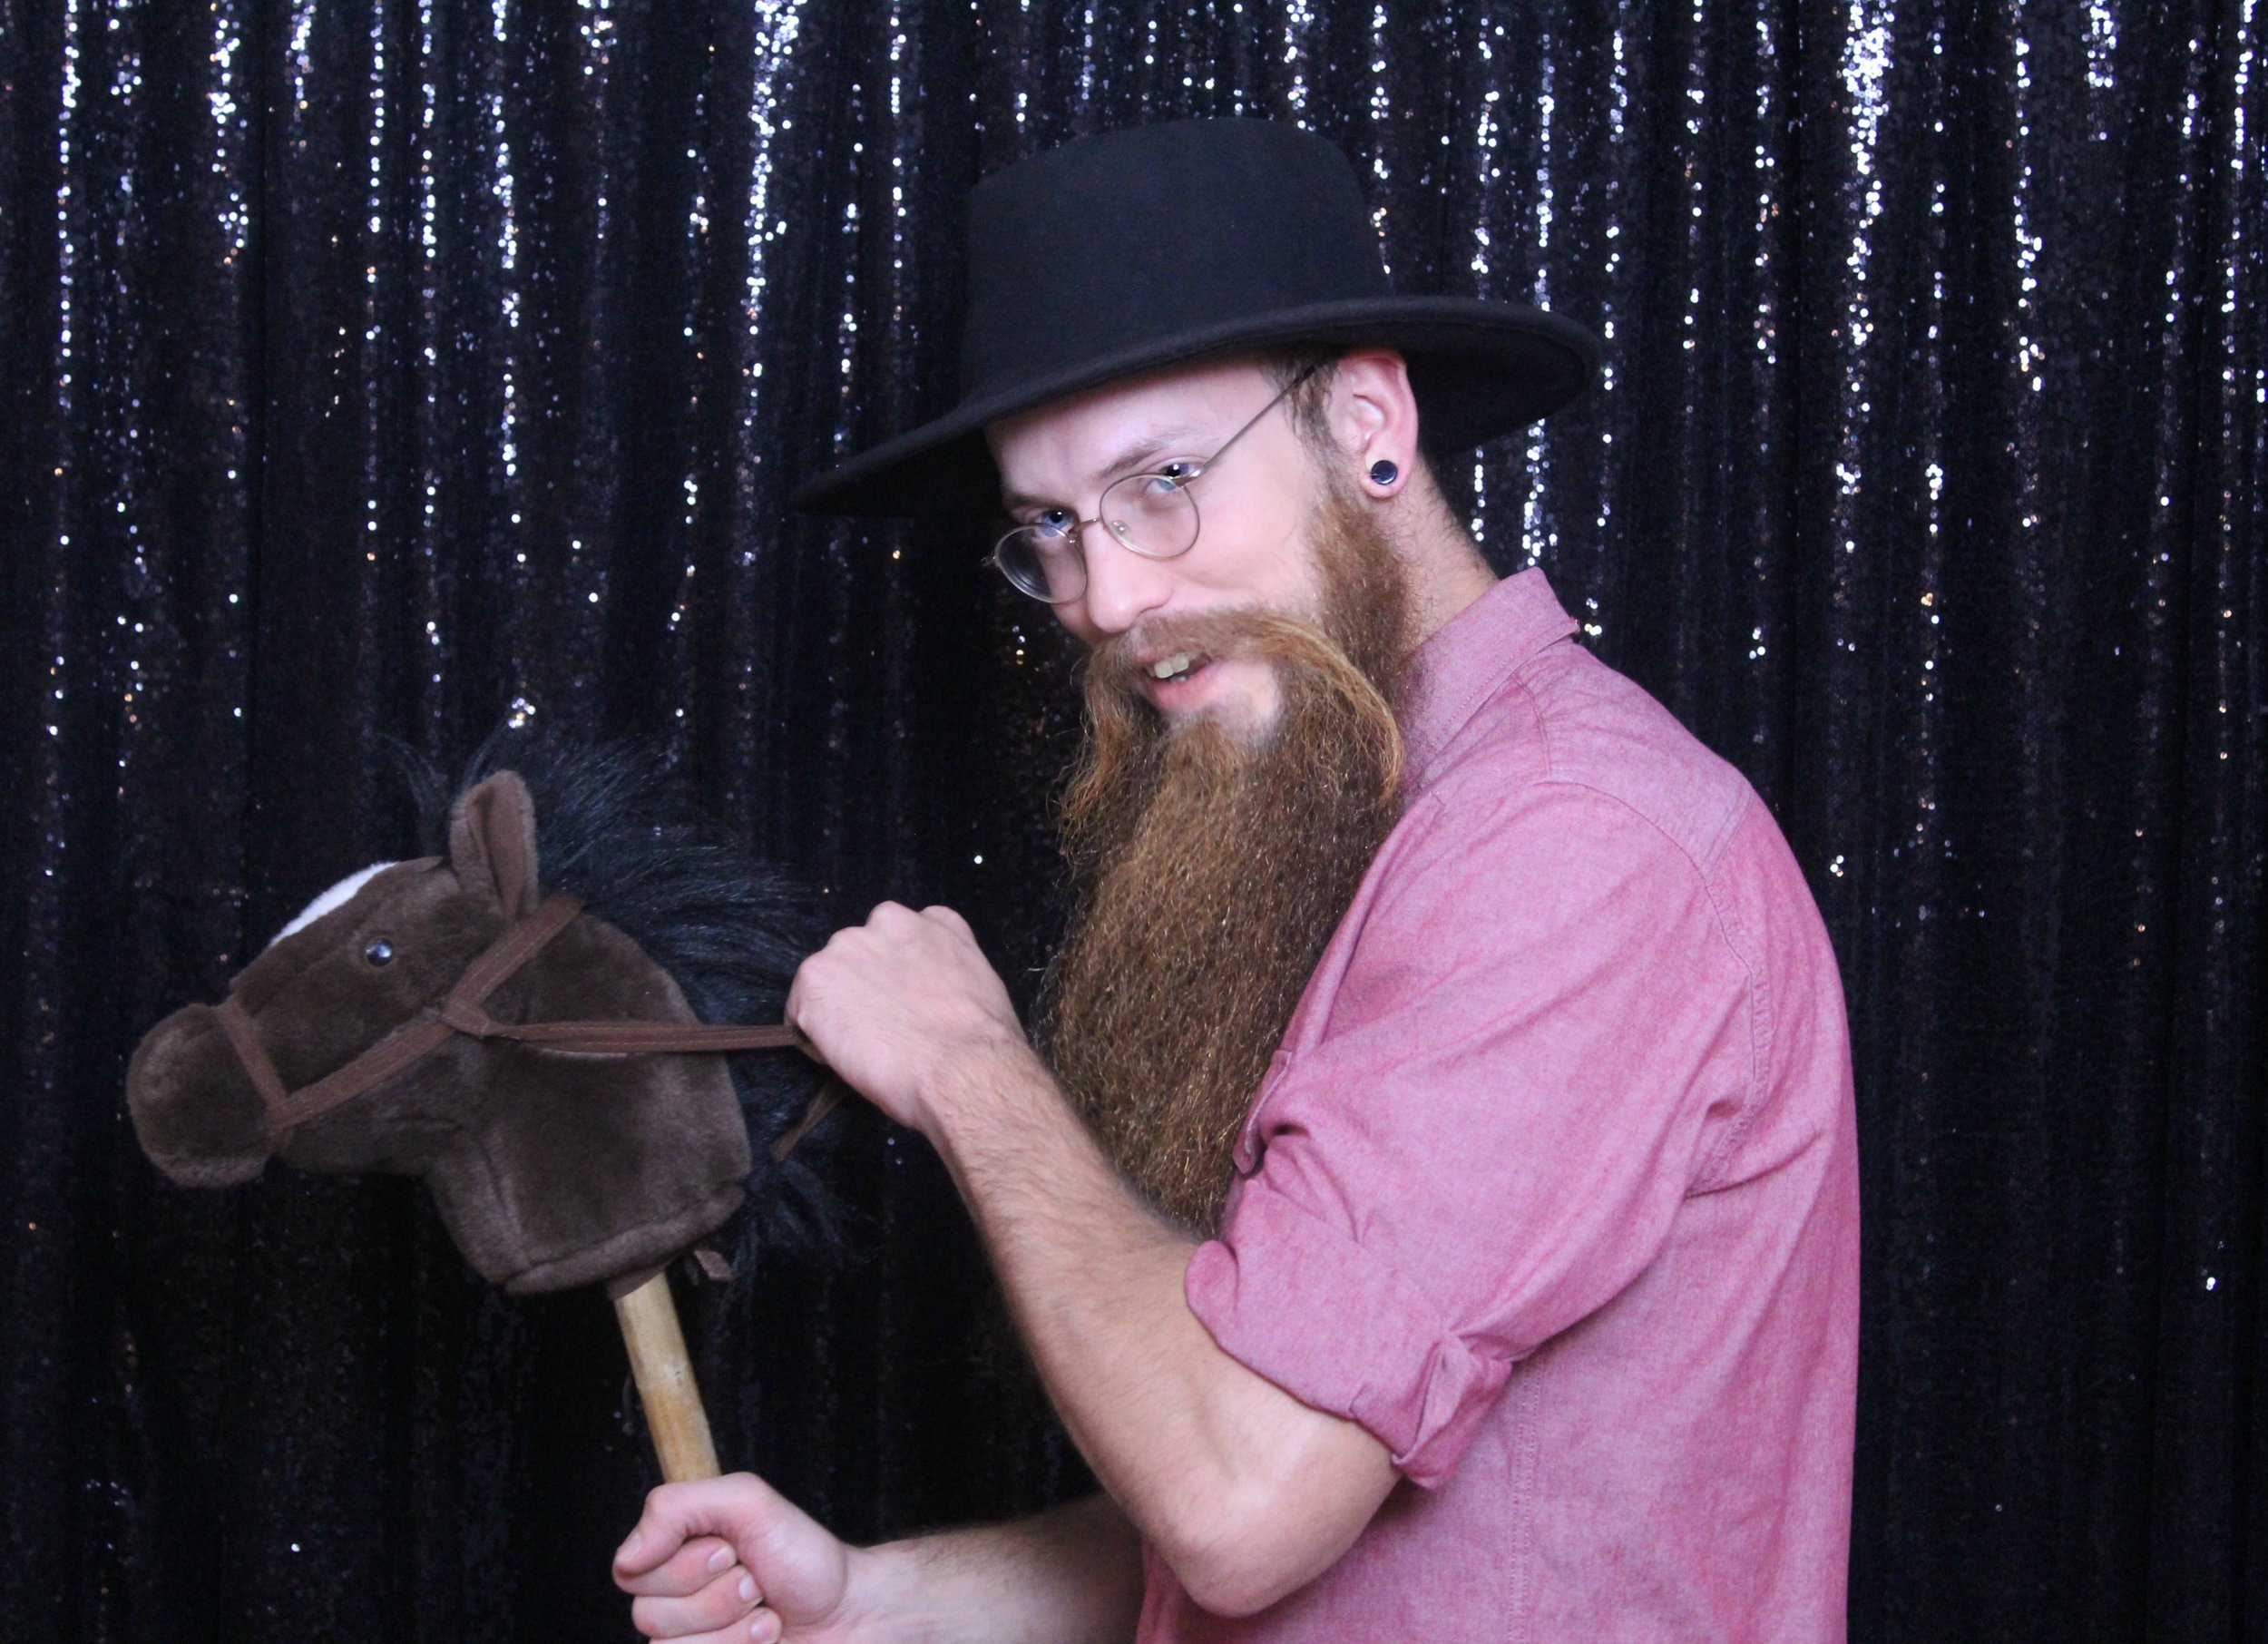 Glitter background and hobby horse prop